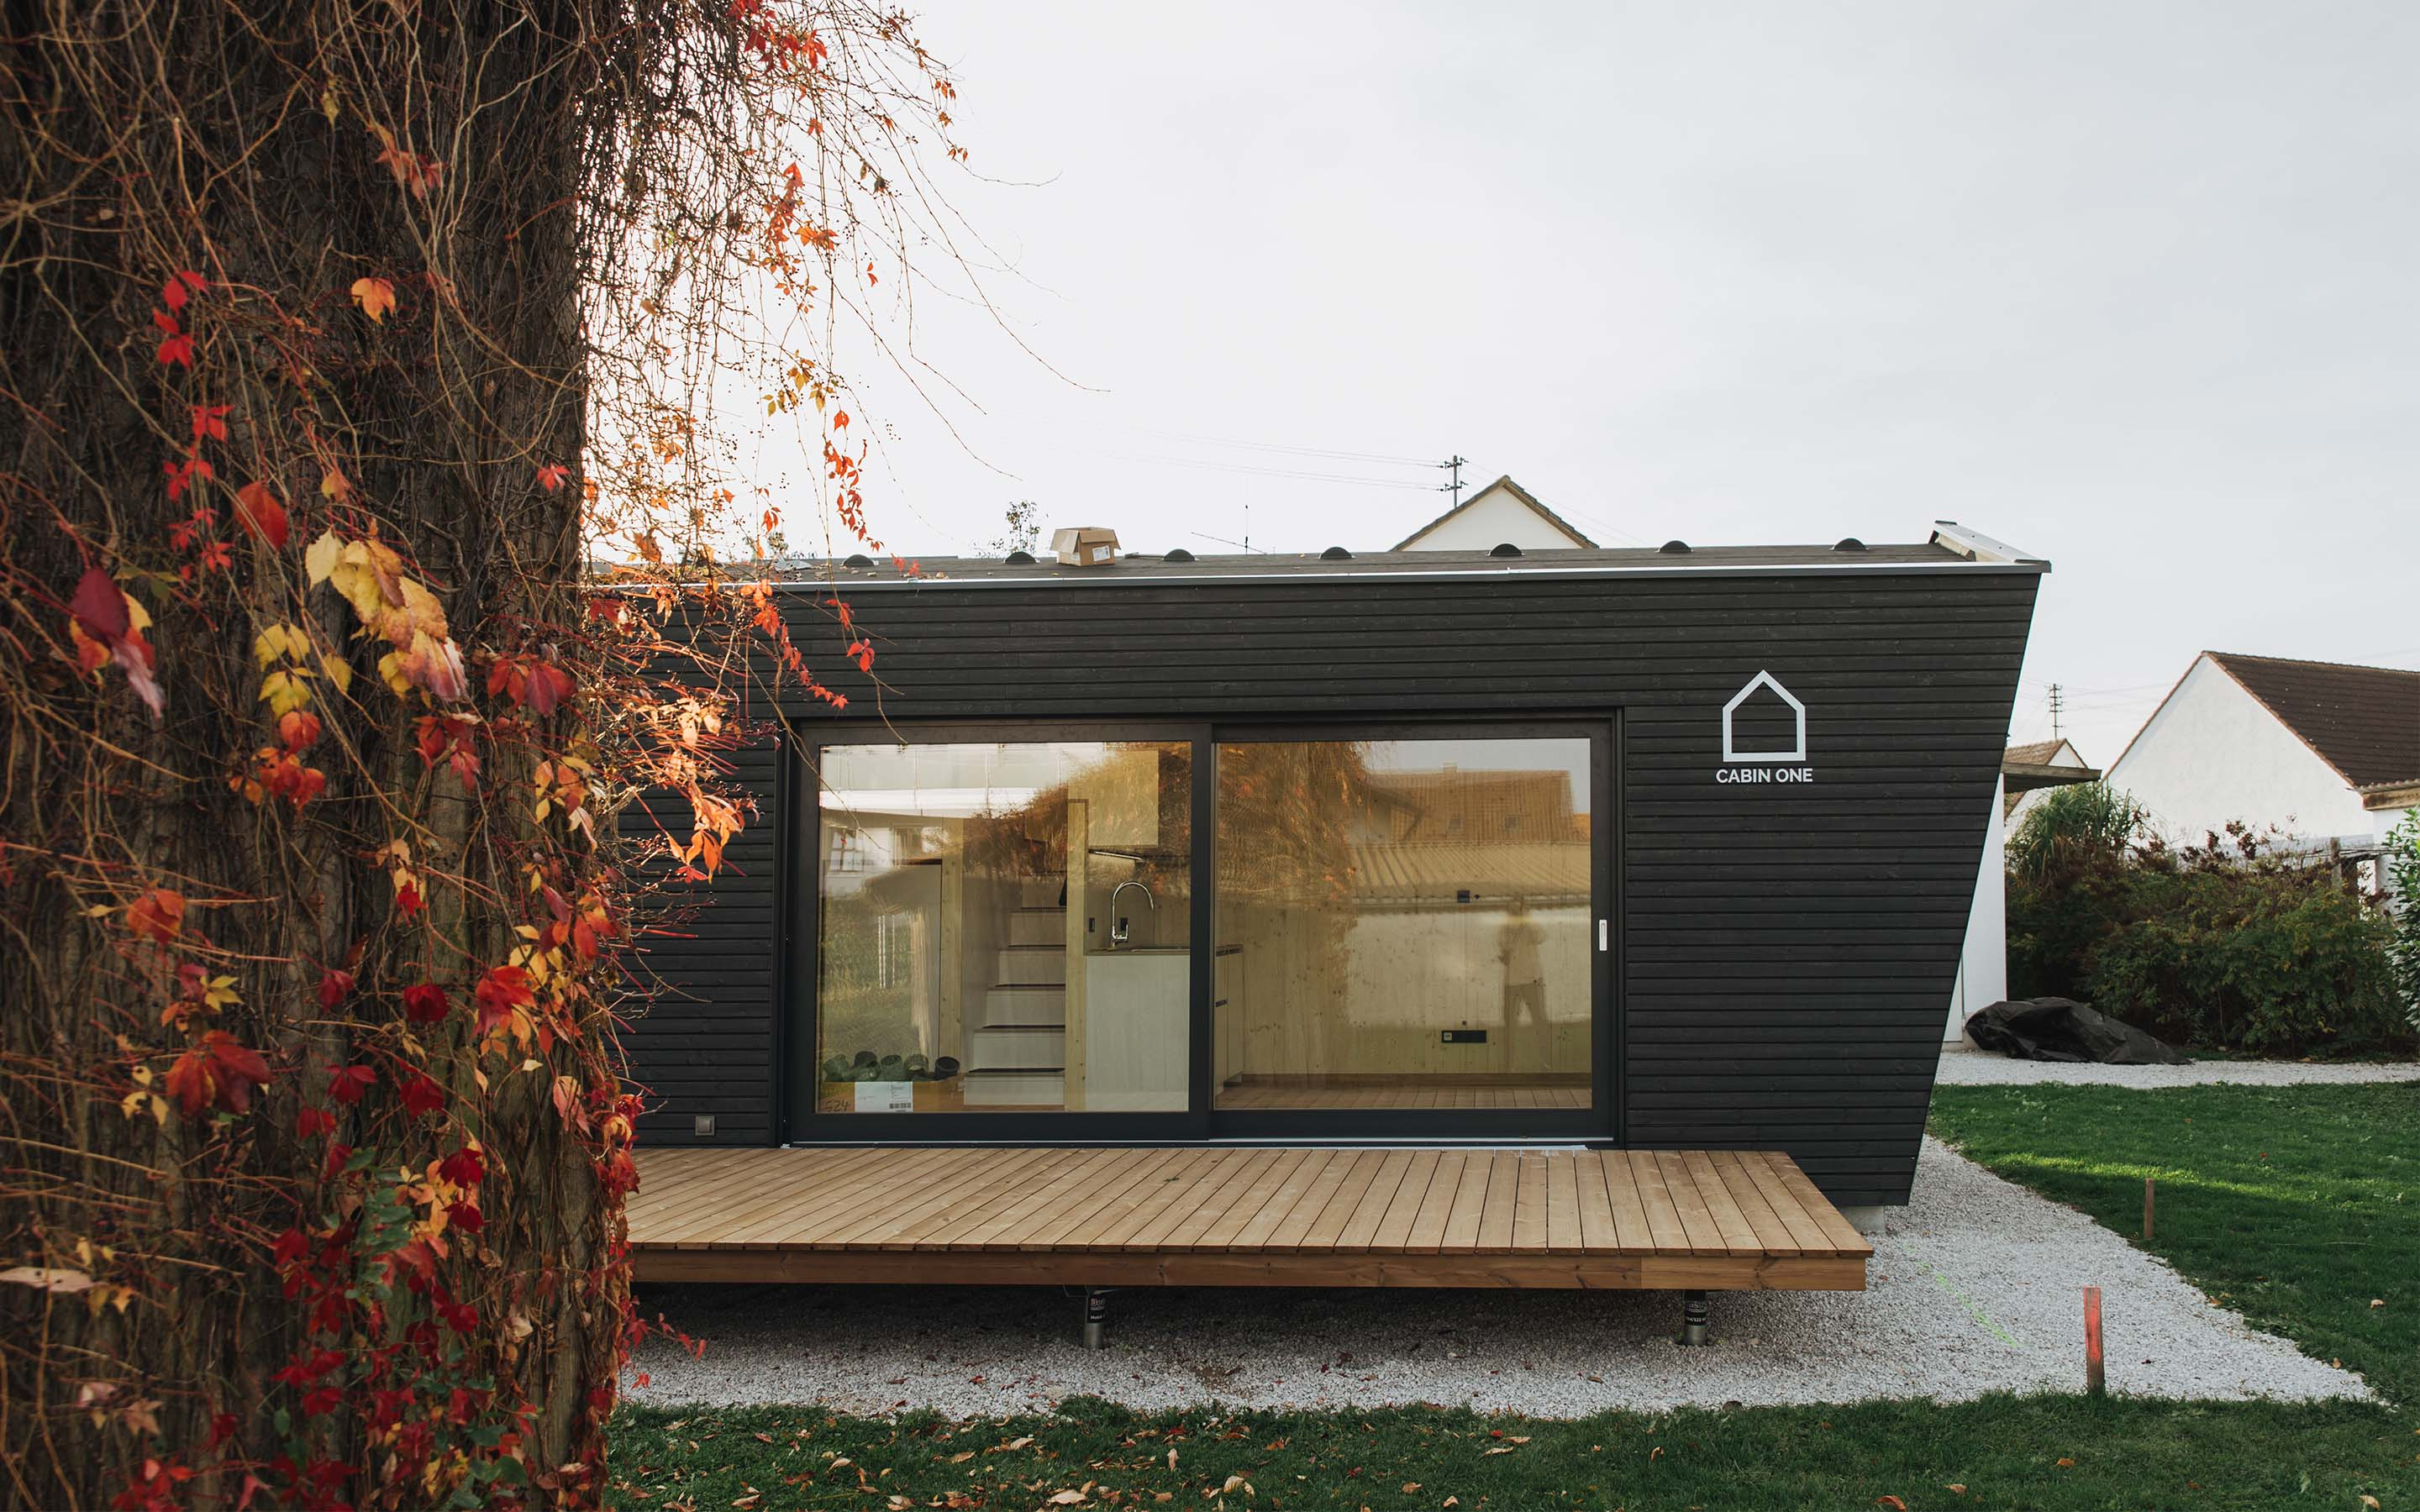 A close up of a modular home with black exterior material and a pitched roof, sitting in a field.